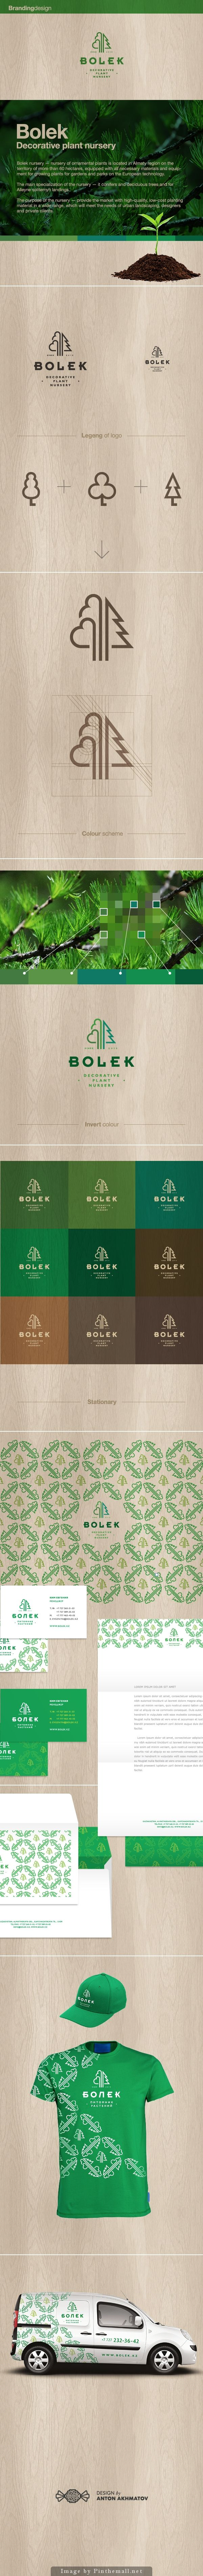 Bolek — decorative plant nursery. Very thorough identity, carefully thought out.